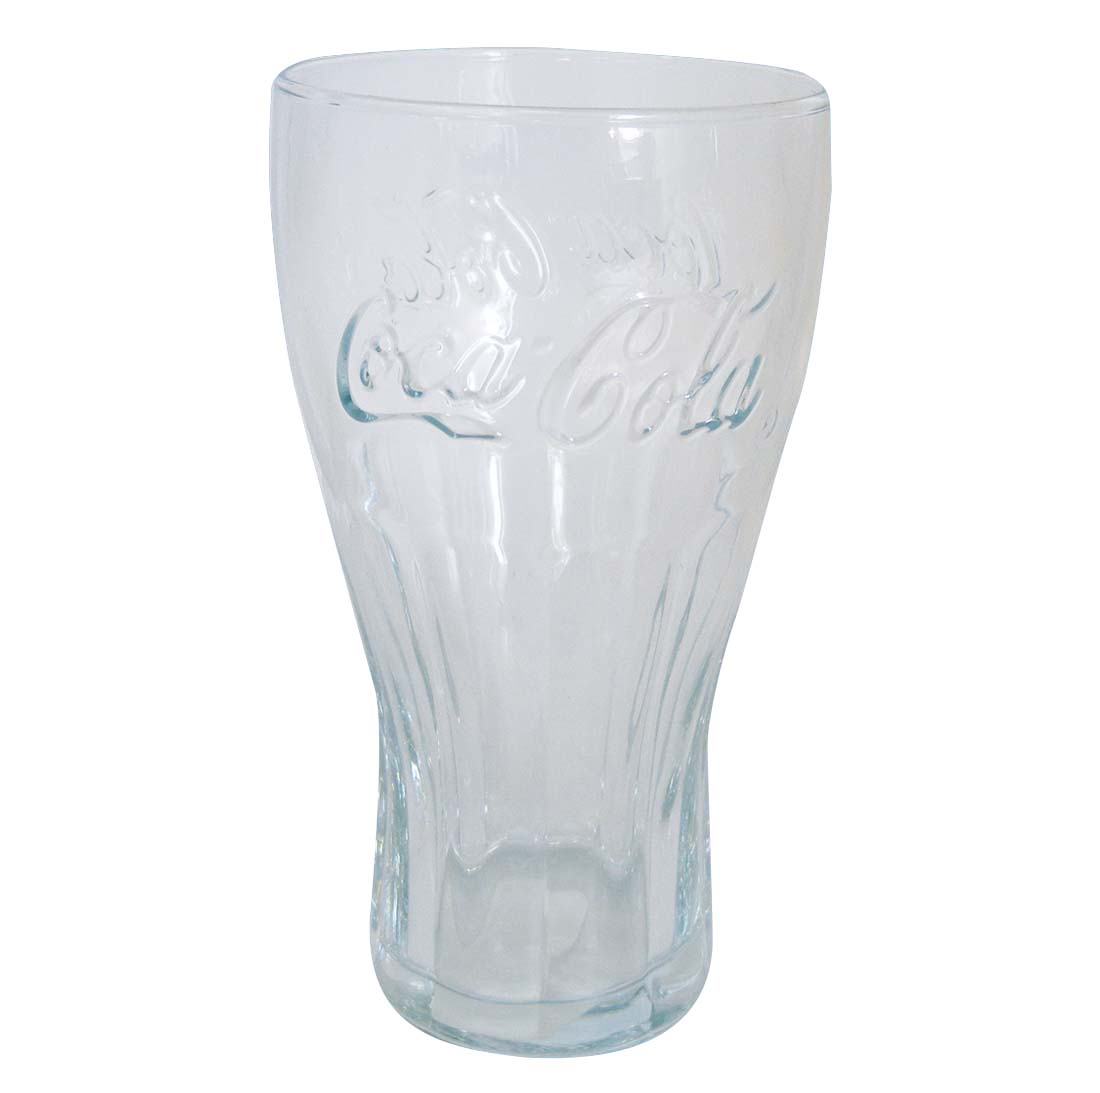 View COCA-COLA GLASS TUMBER 16 OZ CONTOURED